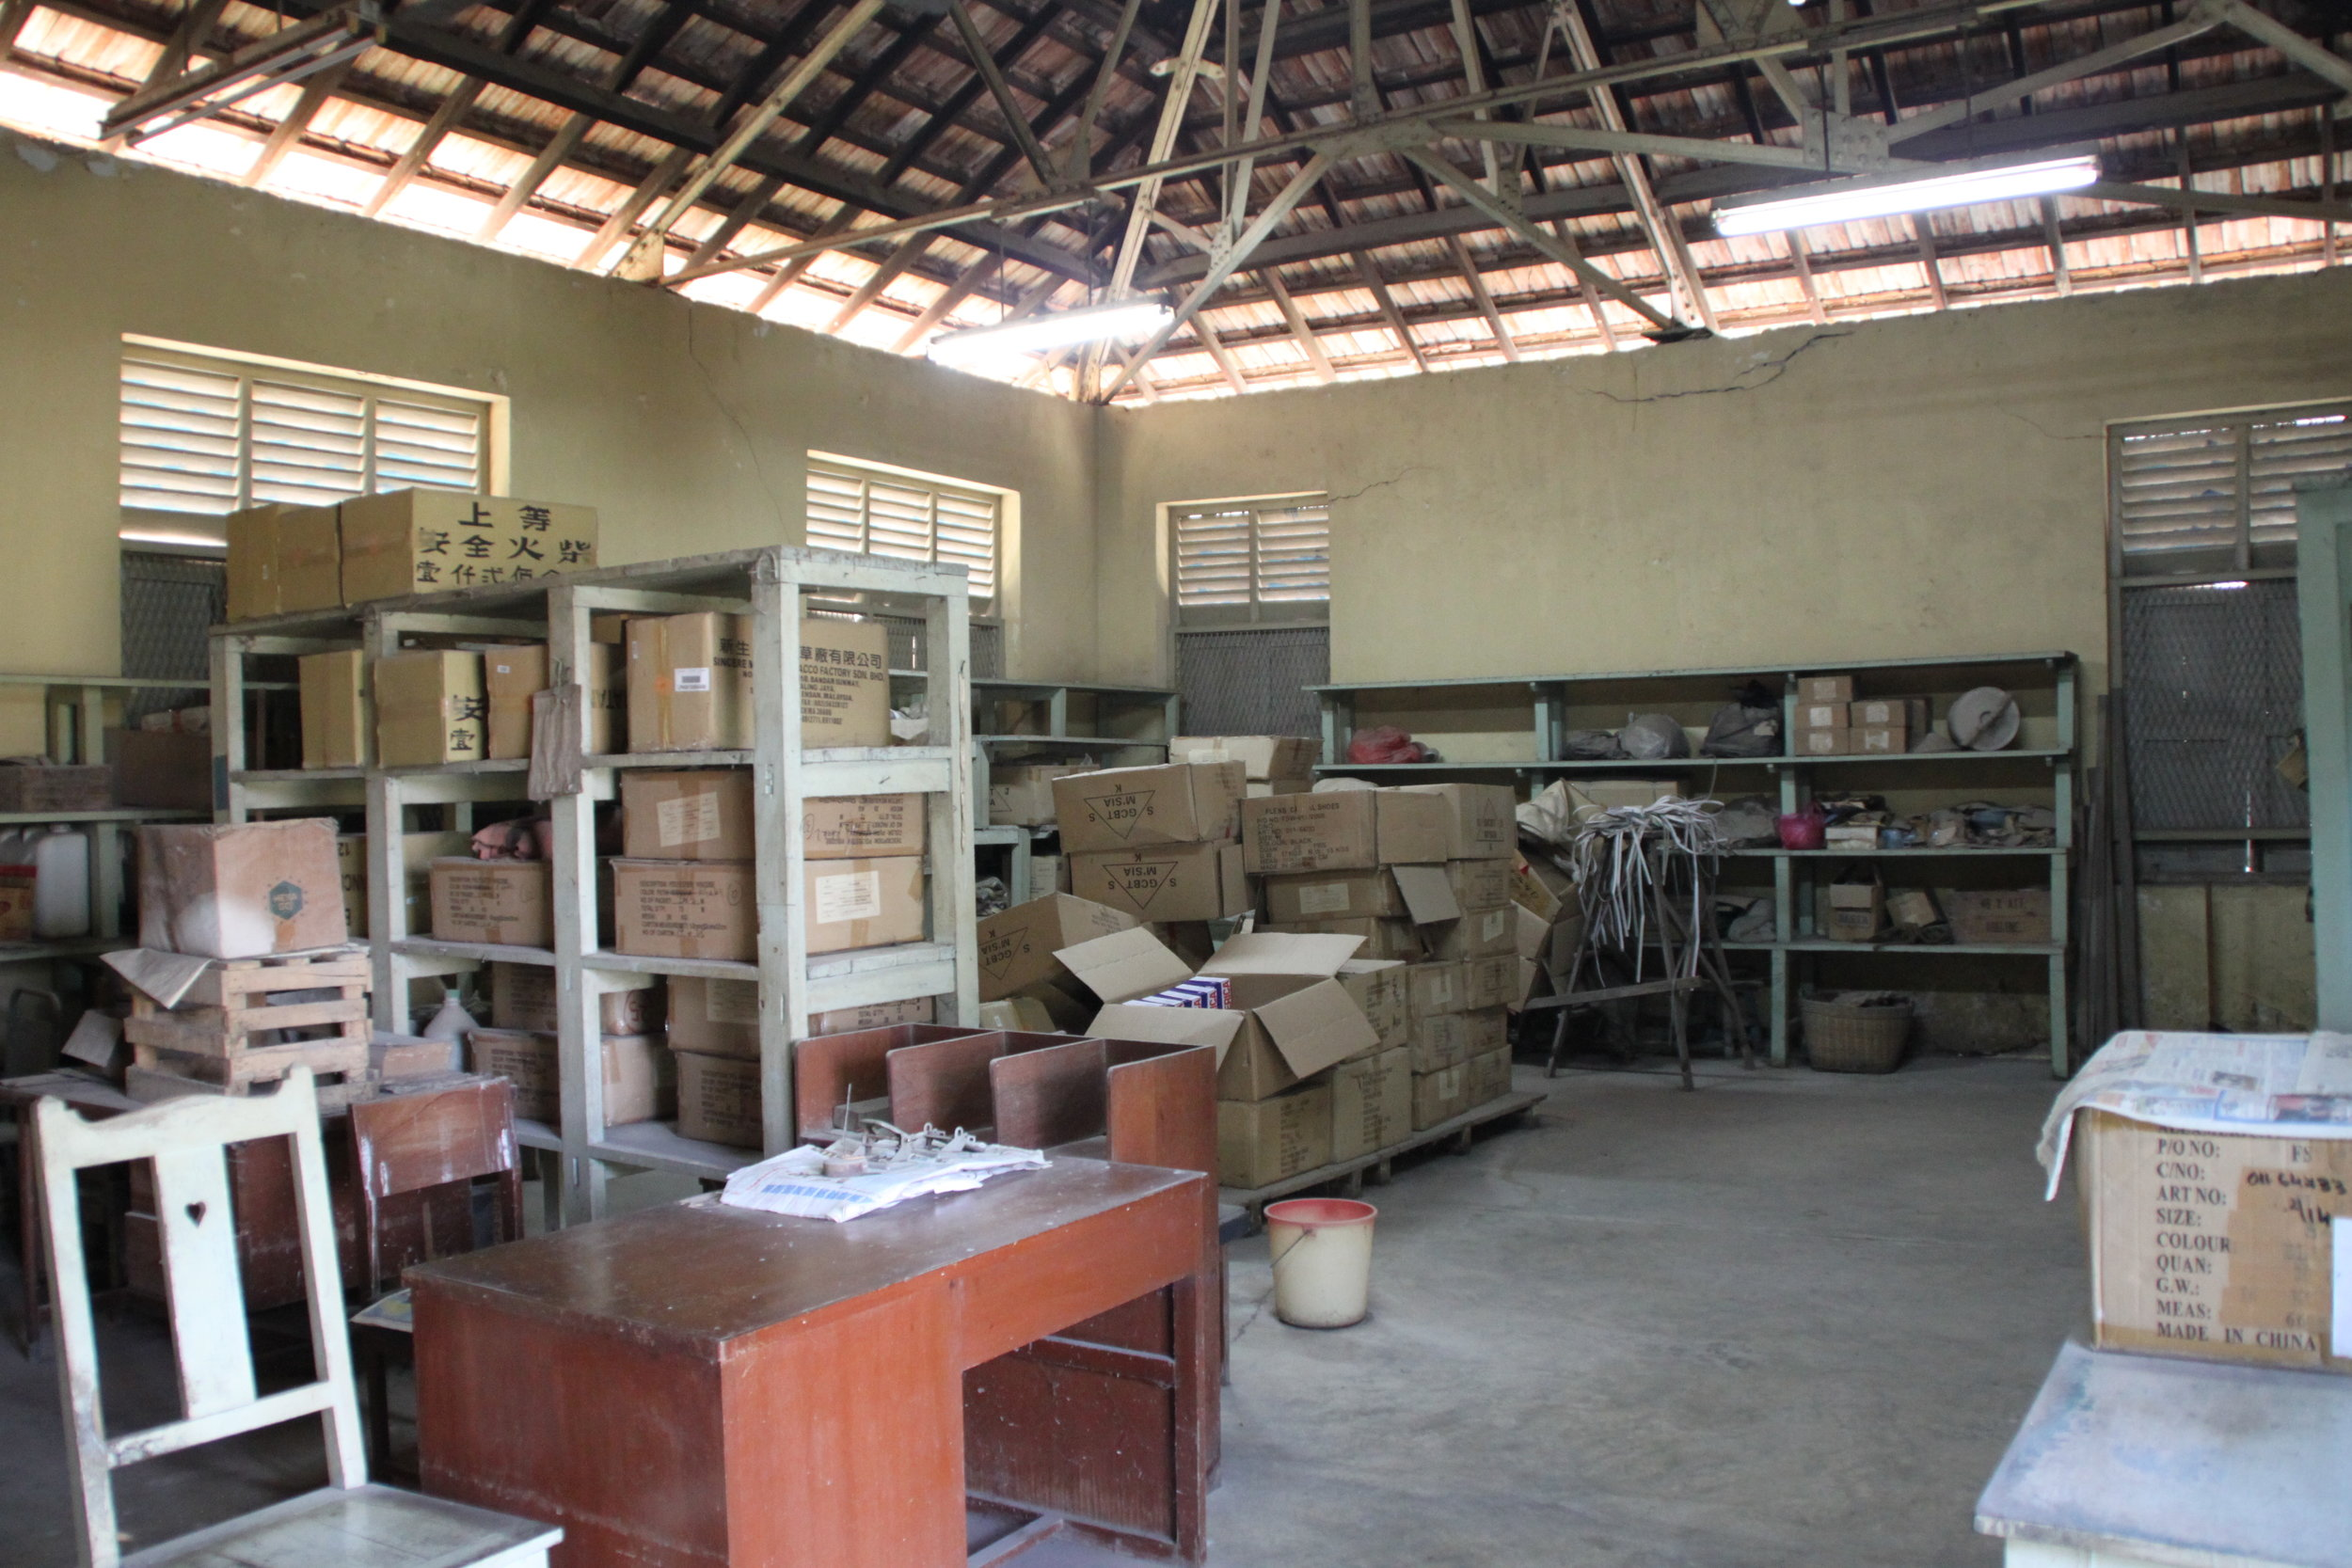 A view of the inmates store where Ang Ah Sim used to work in. (photo by Tan Ean Nee)